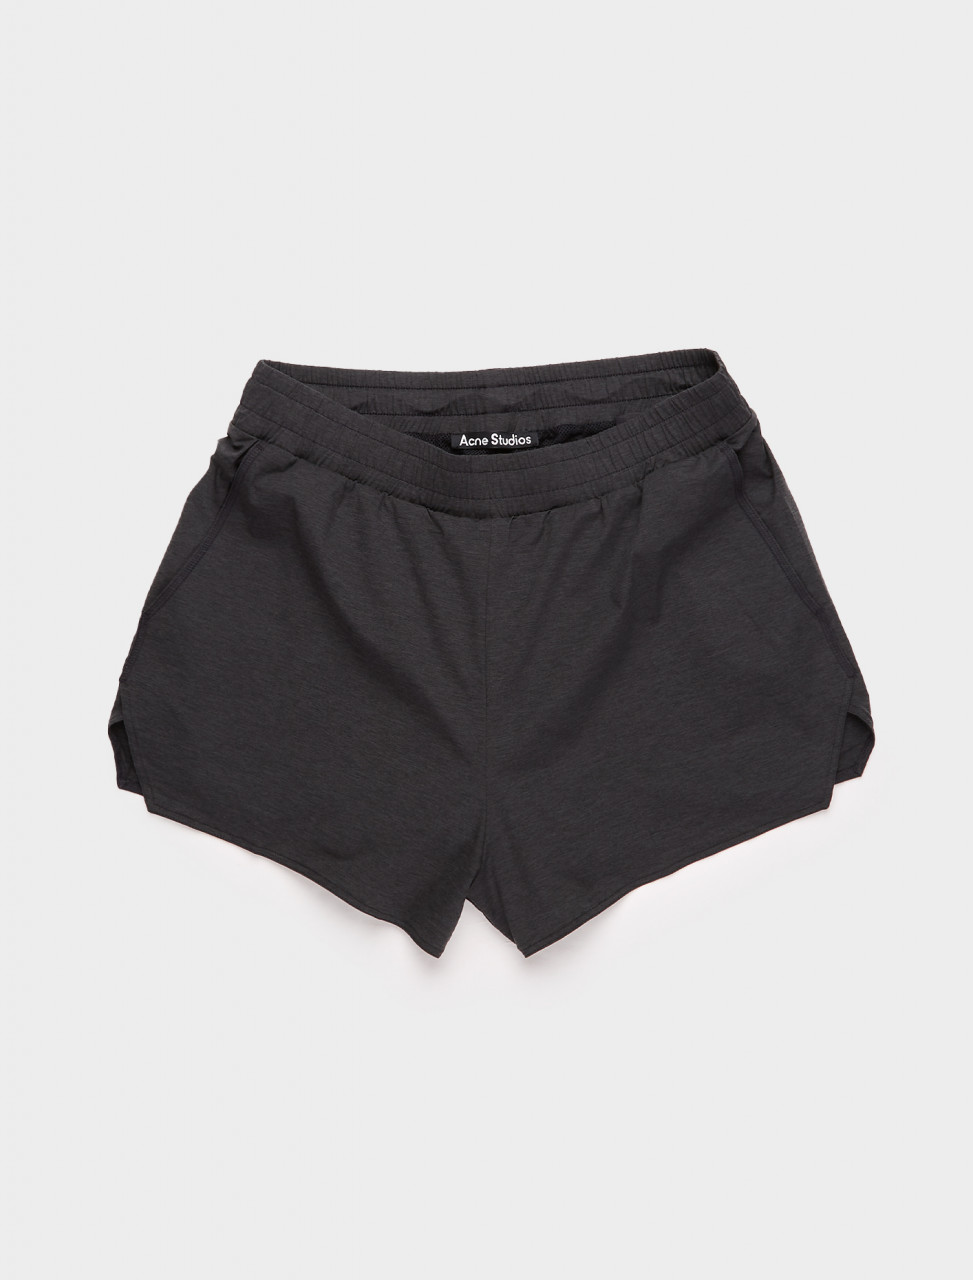 CE0009-900 ACNE STUDIOS RUNNING SHORTS BLACK